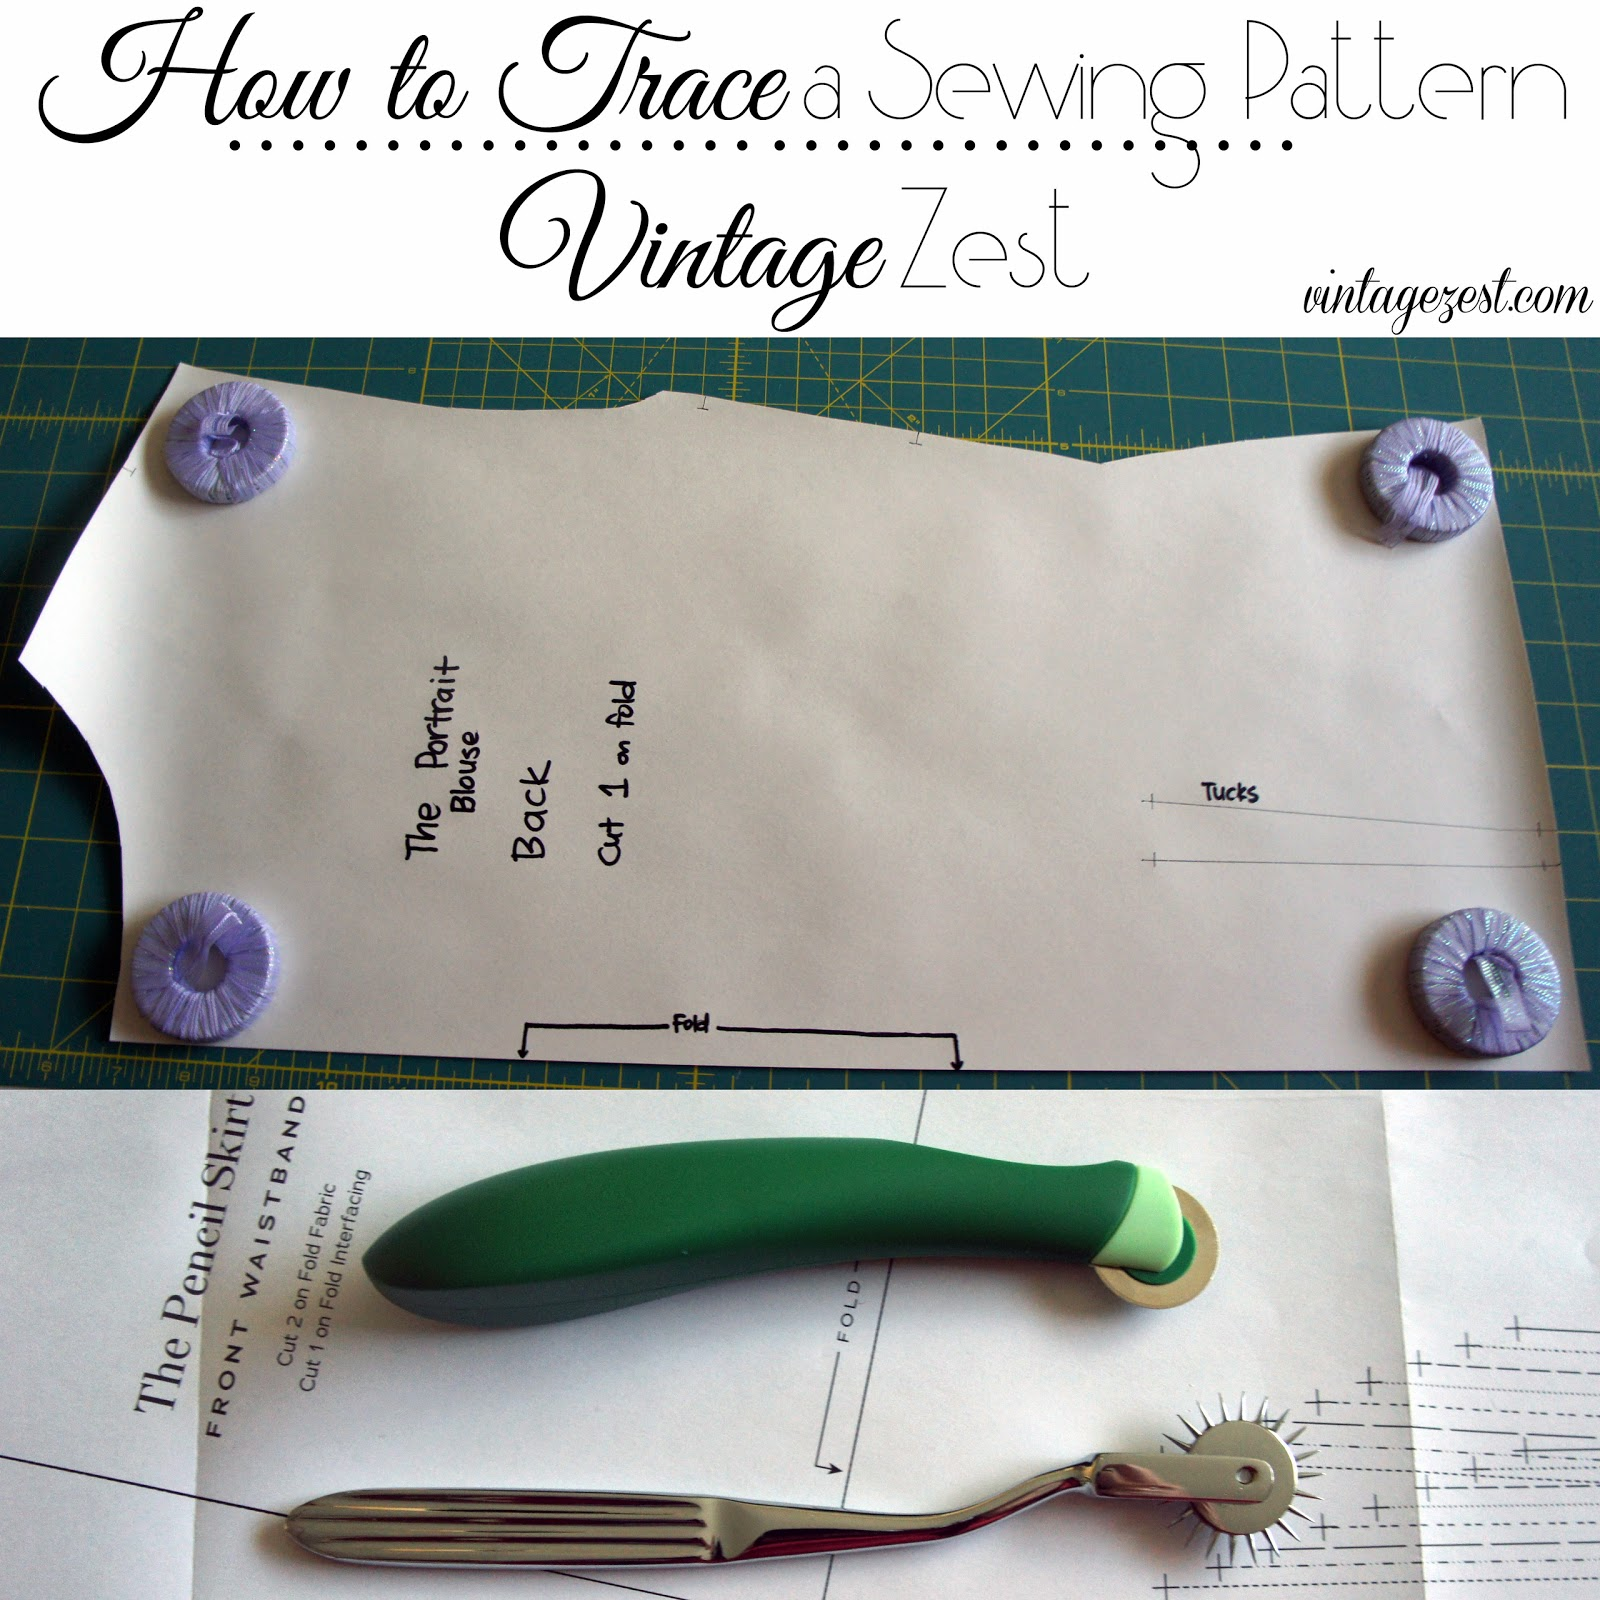 Tools For Tracing Sewing Patterns on Diane's Vintage Zest!